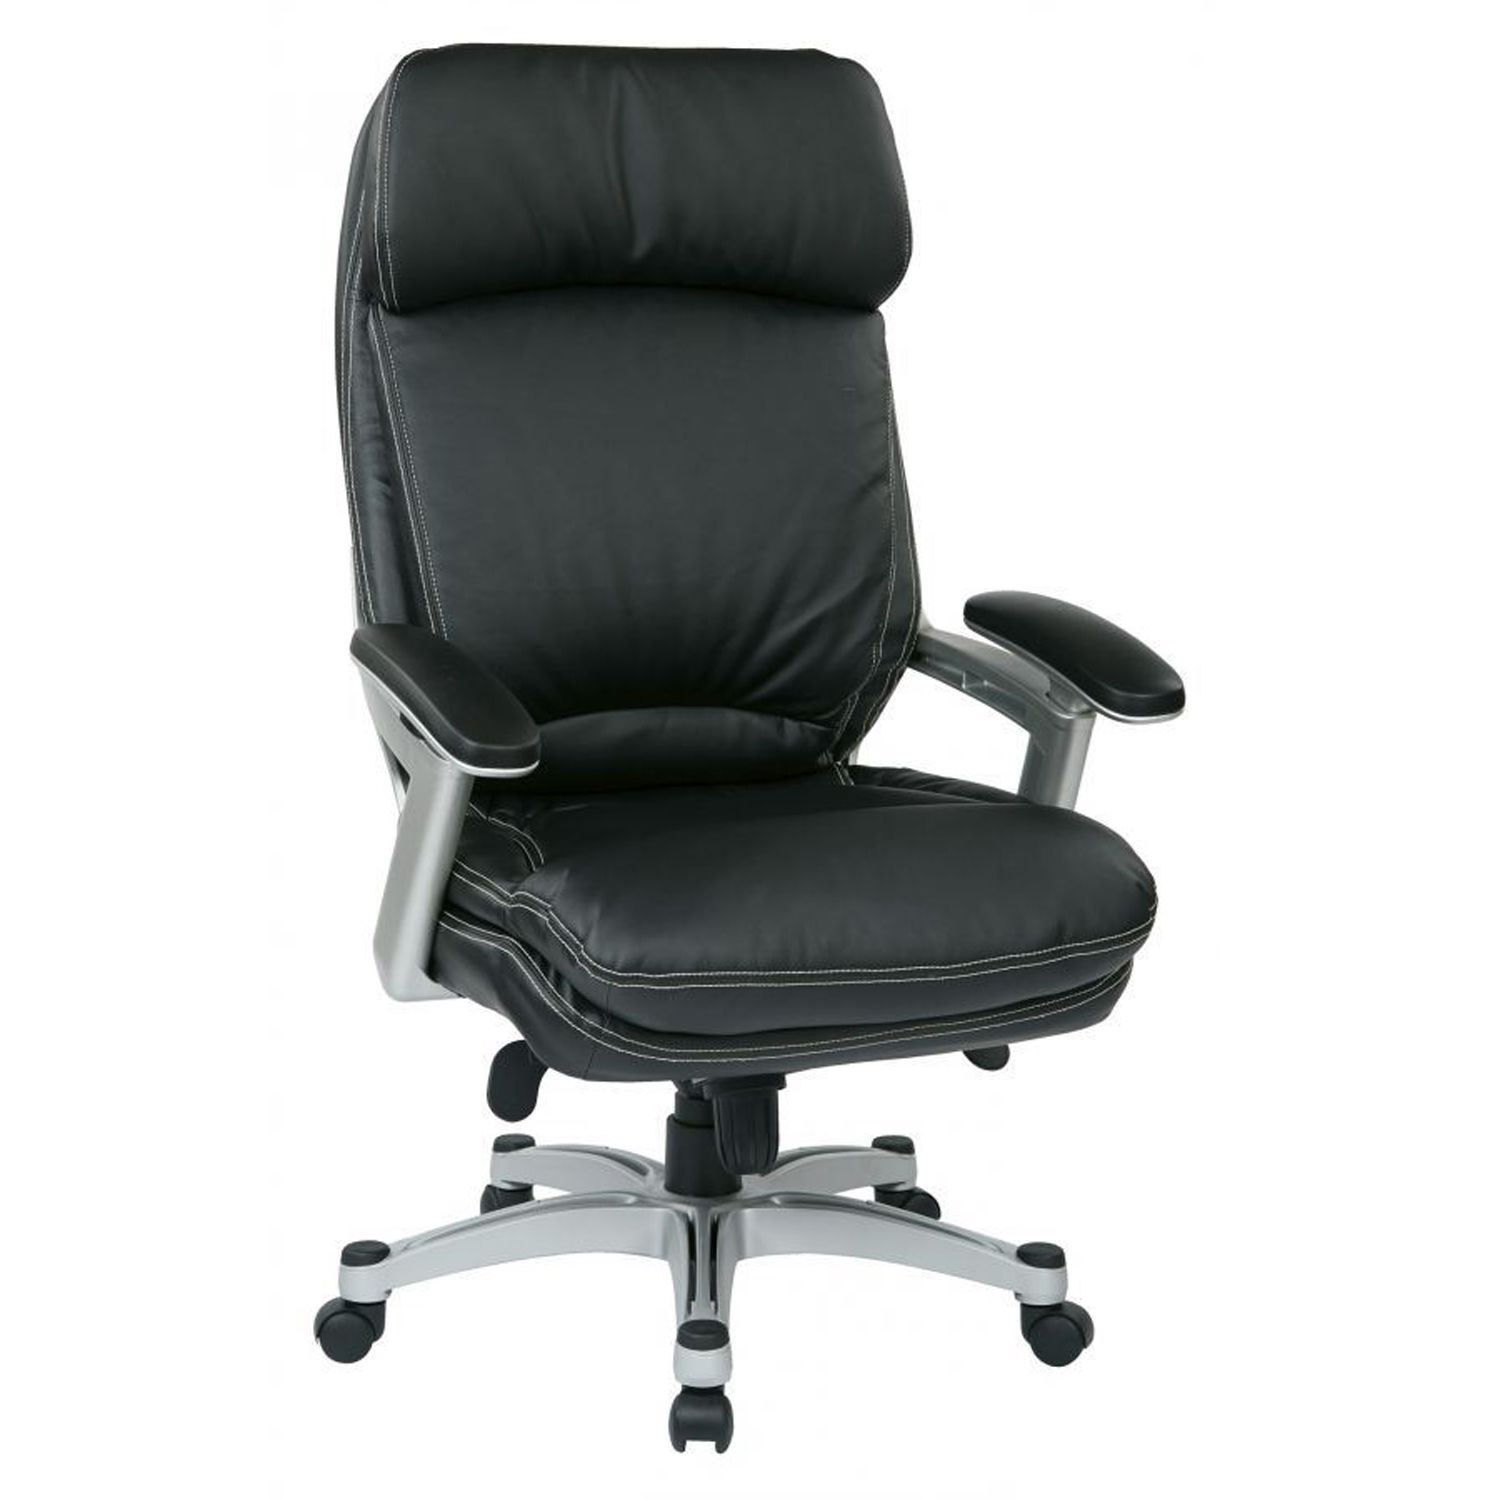 Stupendous Black Bonded Leather Office Chair Oph62606 Ec3 D Pabps2019 Chair Design Images Pabps2019Com